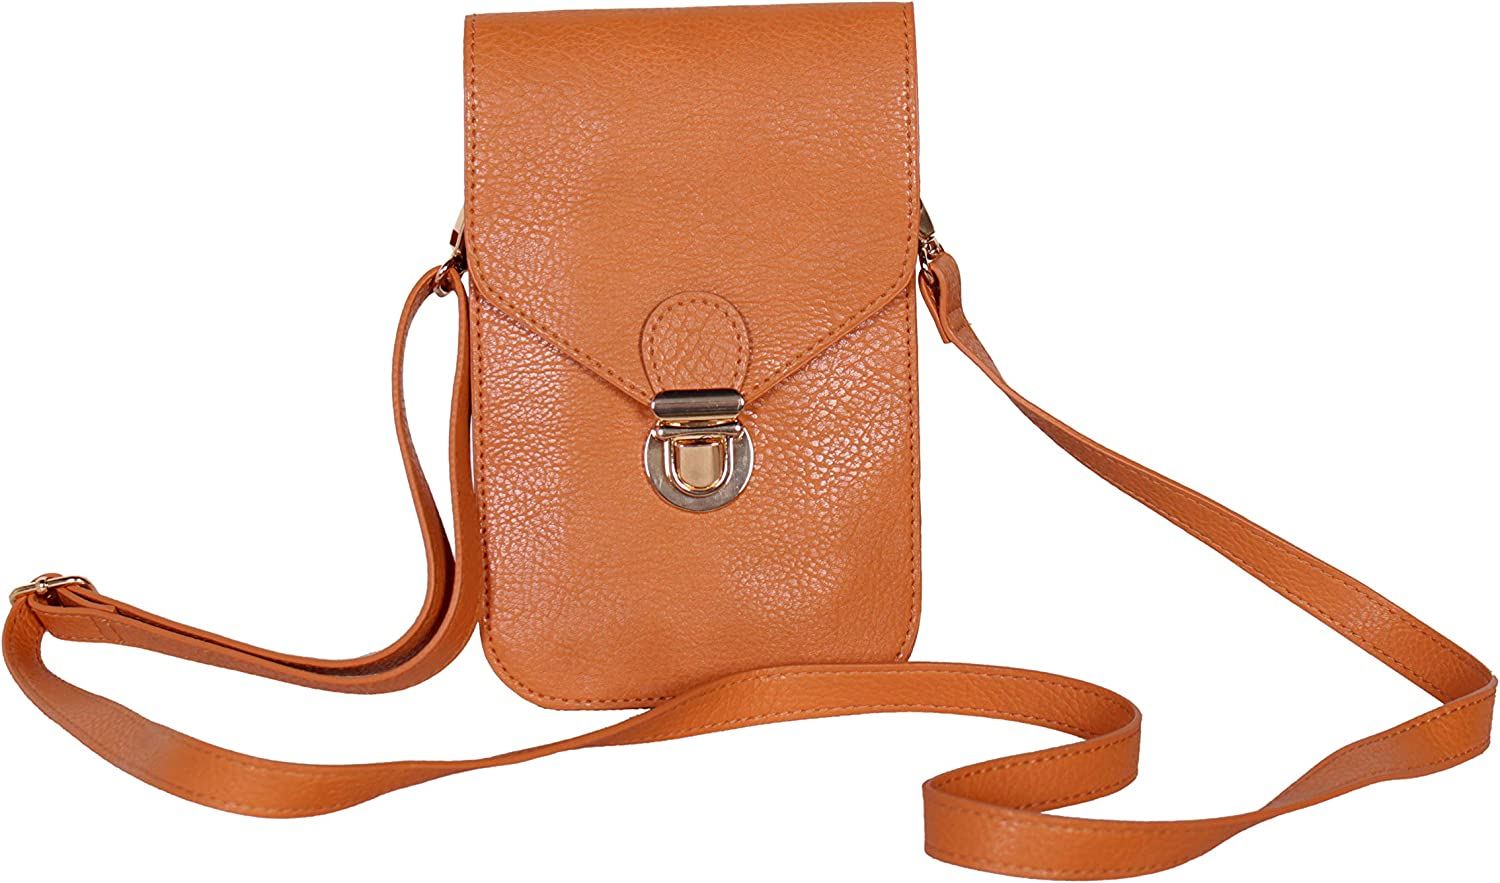 Pro-tection Phone Purse, Small Crossbody Shoulder Leather Bag with Strap and Soft Touch Screen For Women